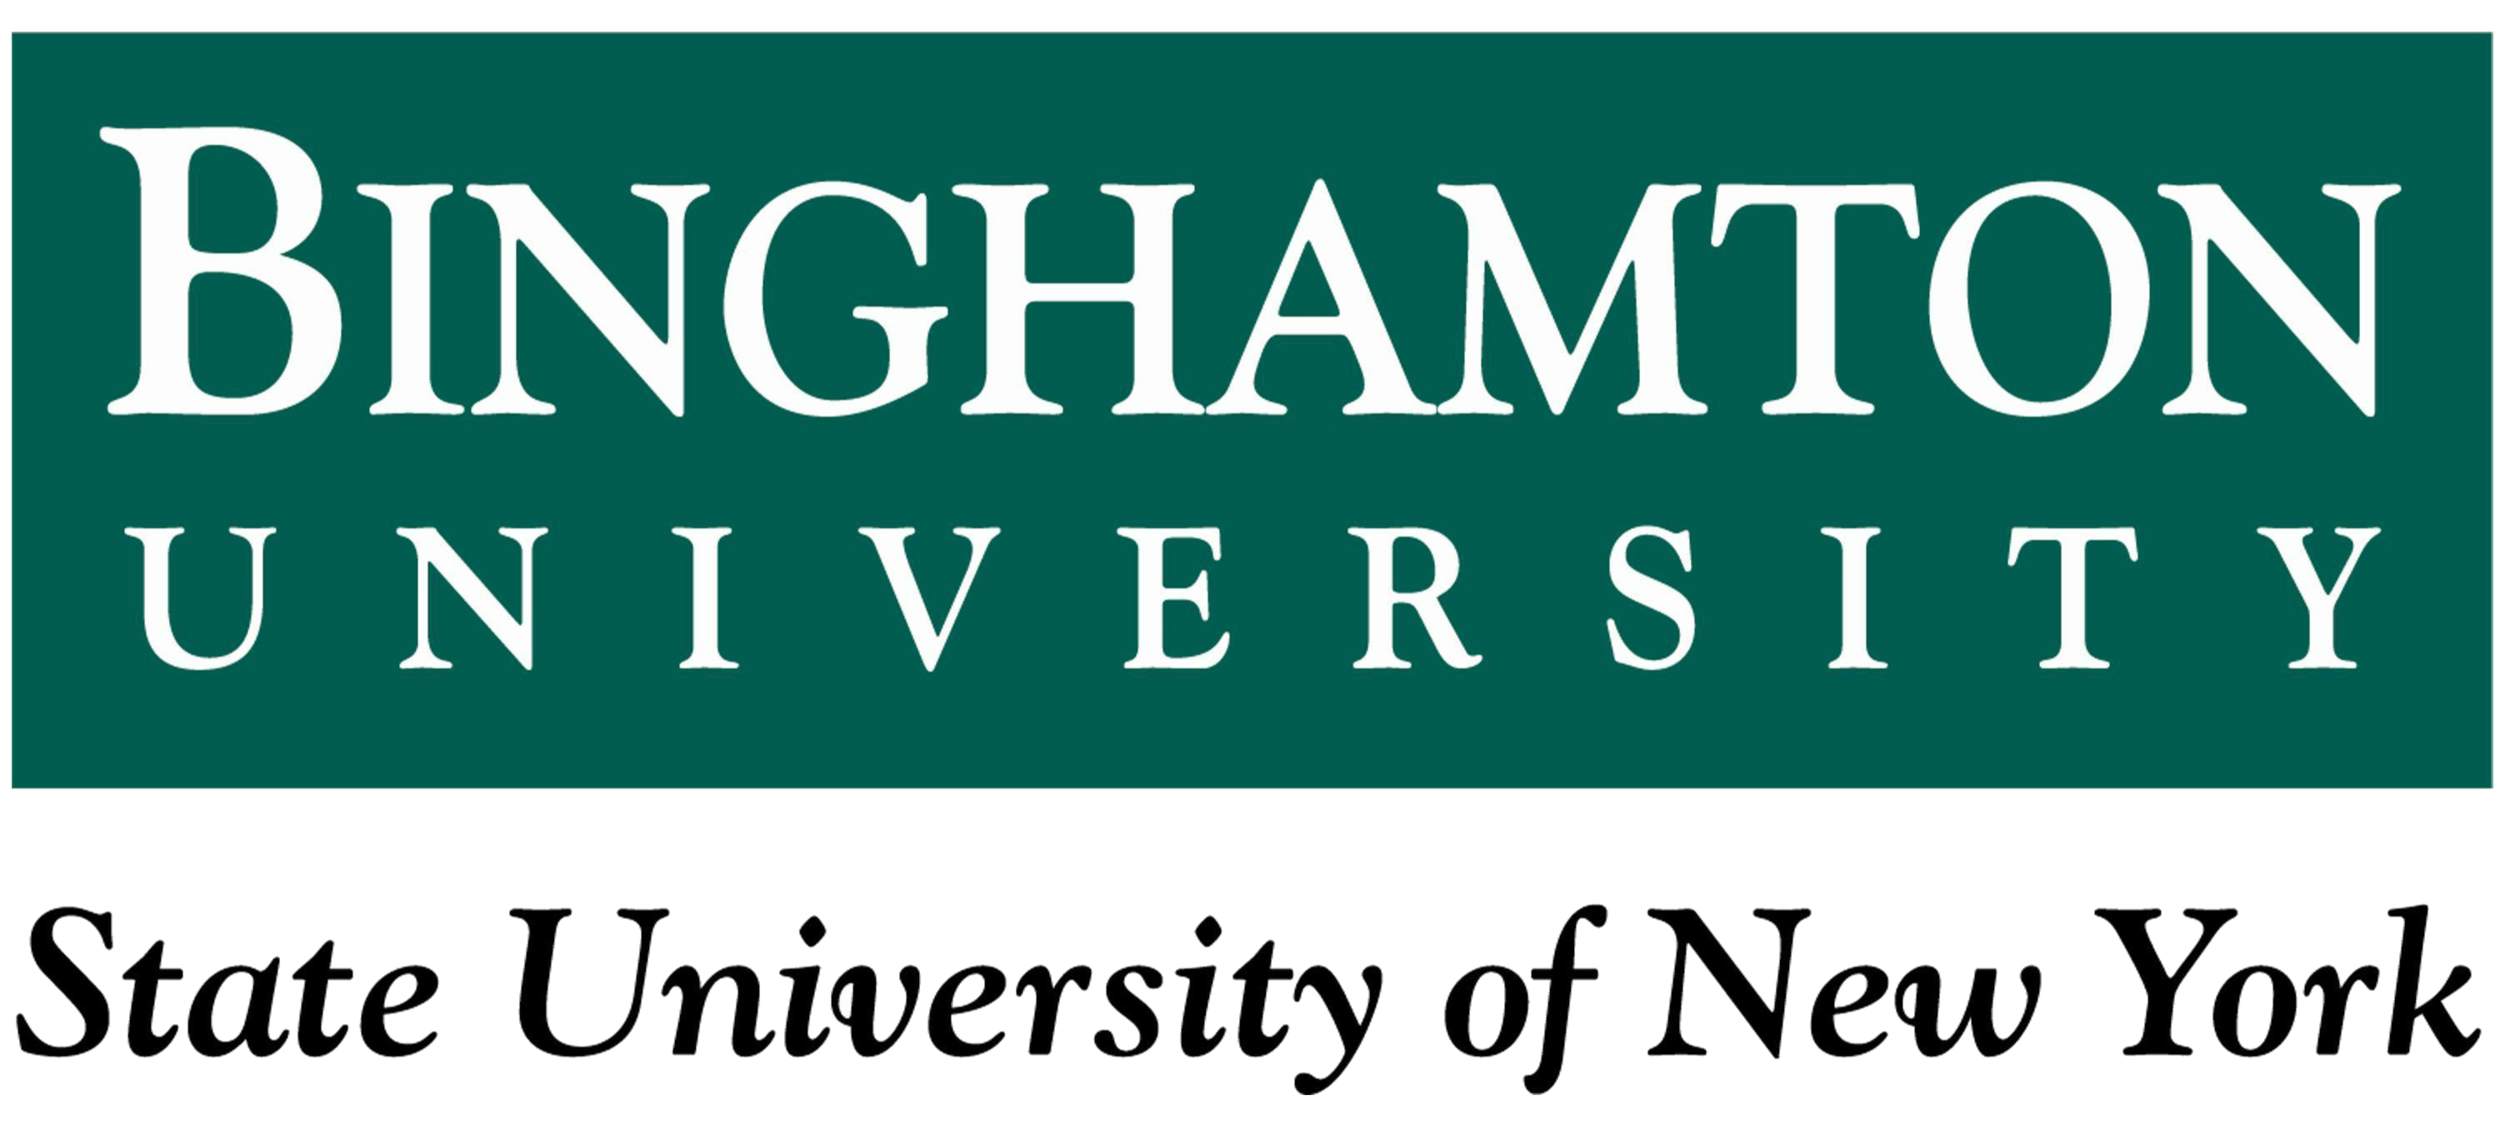 Binghamton_University_State_University_of_New_York_logo_(PNG).png